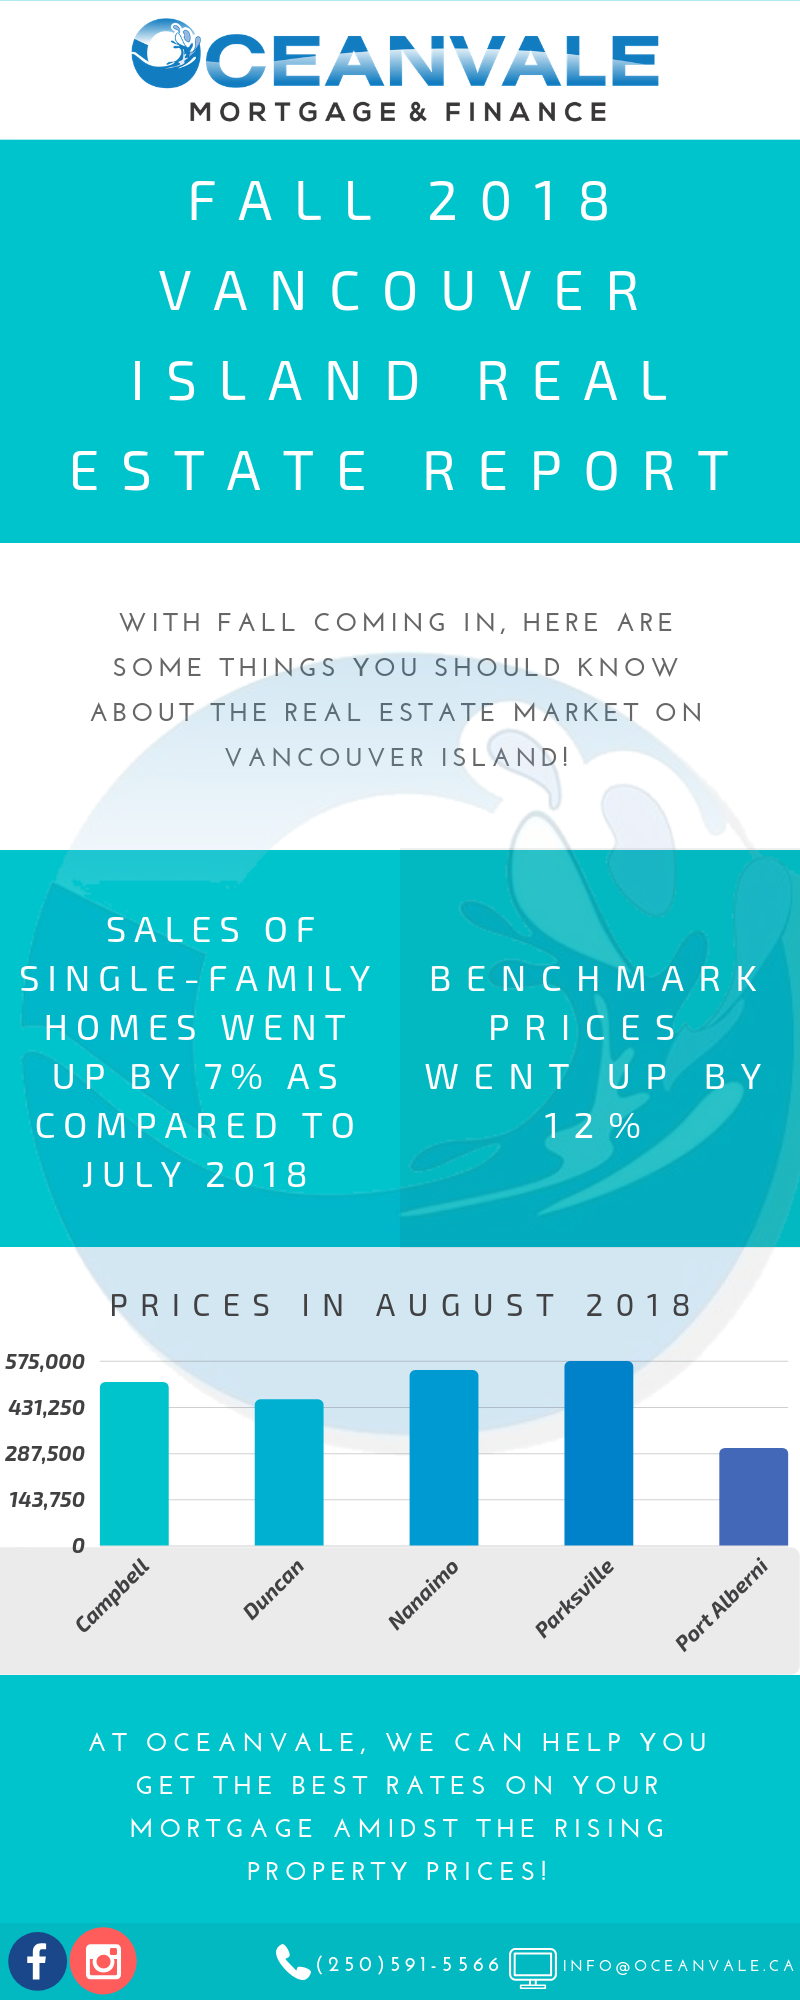 Vancouver Island Real Estate Review.png